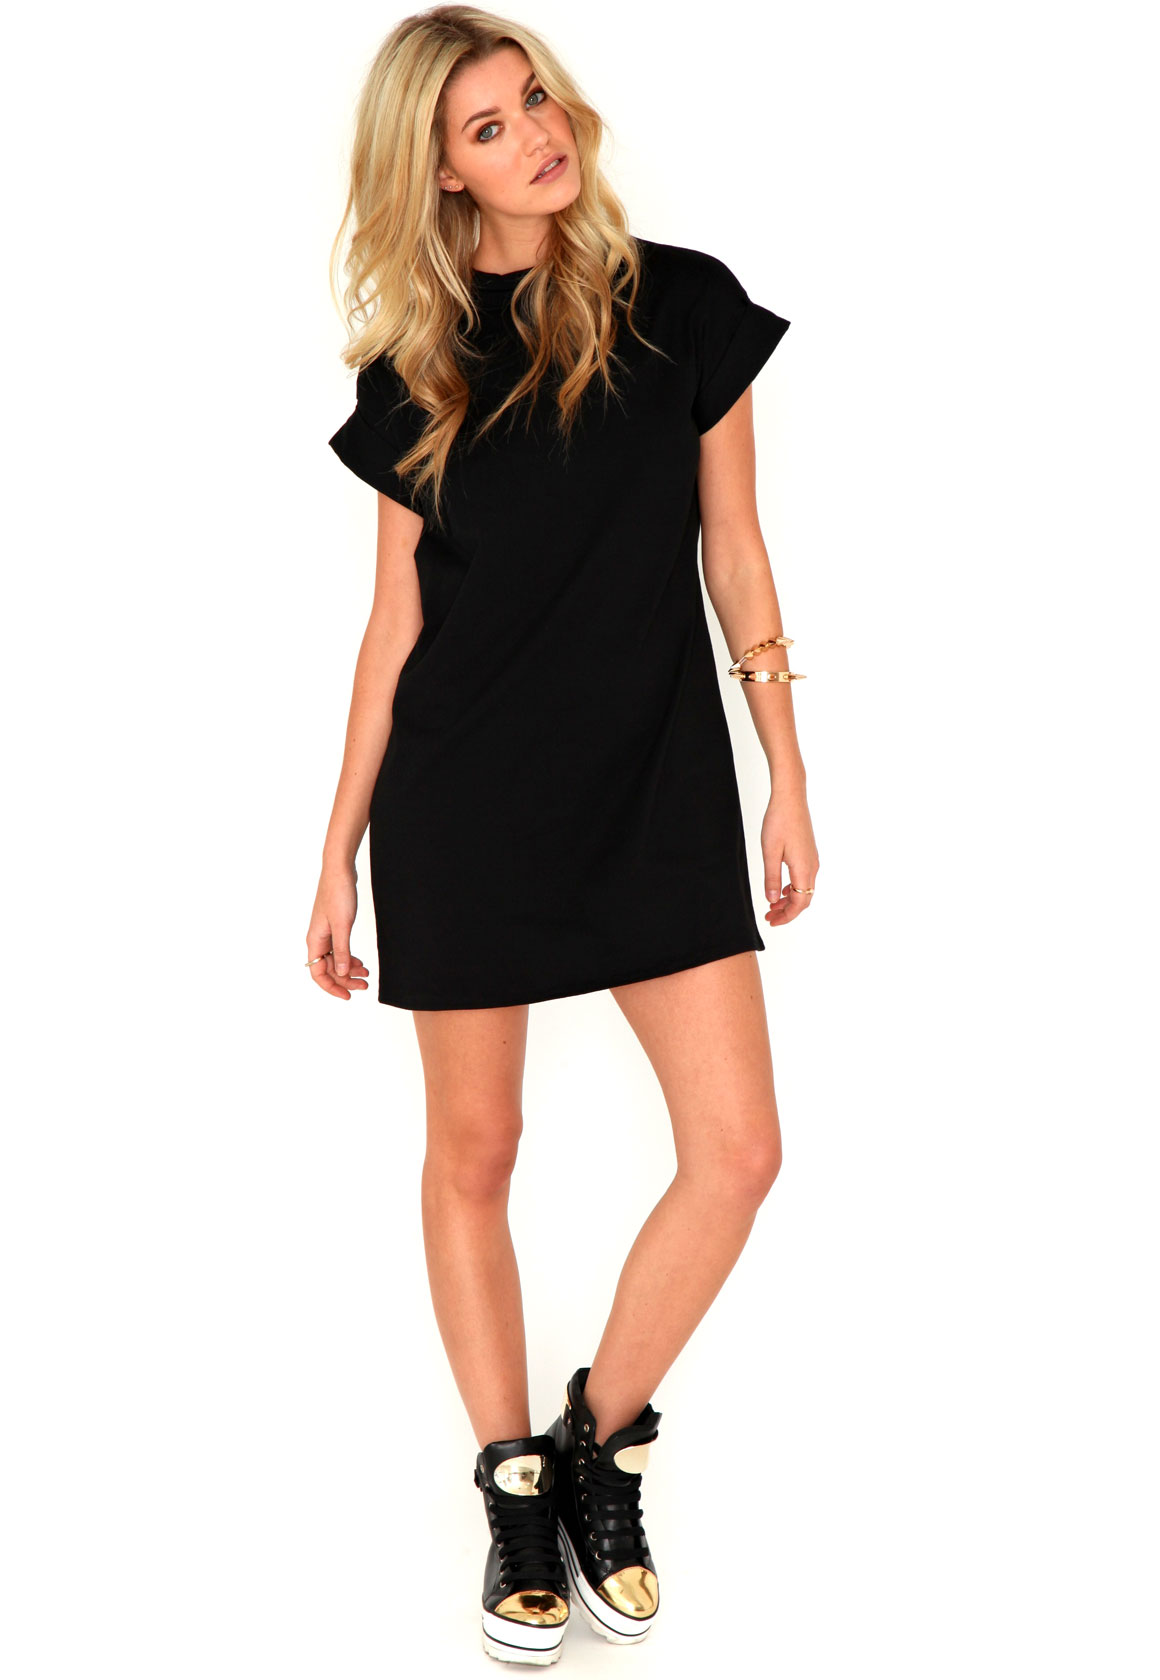 Price search results for Black Suede and PU T Shirt Dress Black